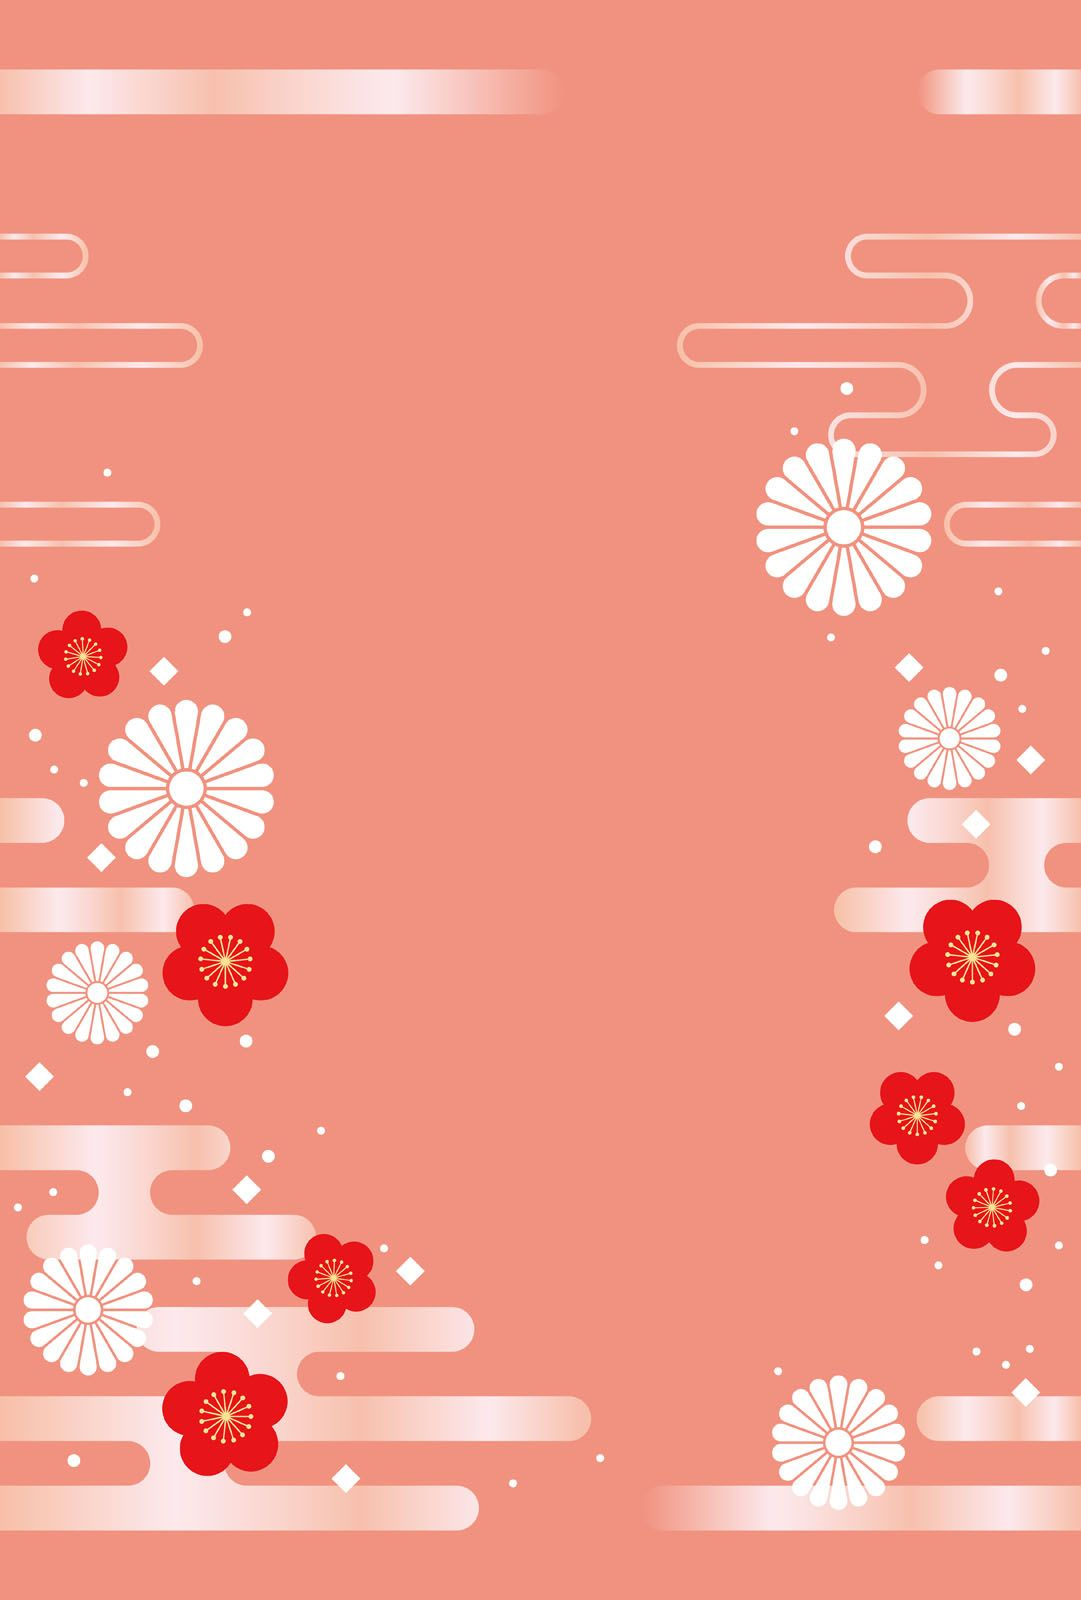 Download Japanese Seamless New Years Vertical Card Template Vector Art Choose From Japanese Background Chinese New Year Background Chinese New Year Wallpaper